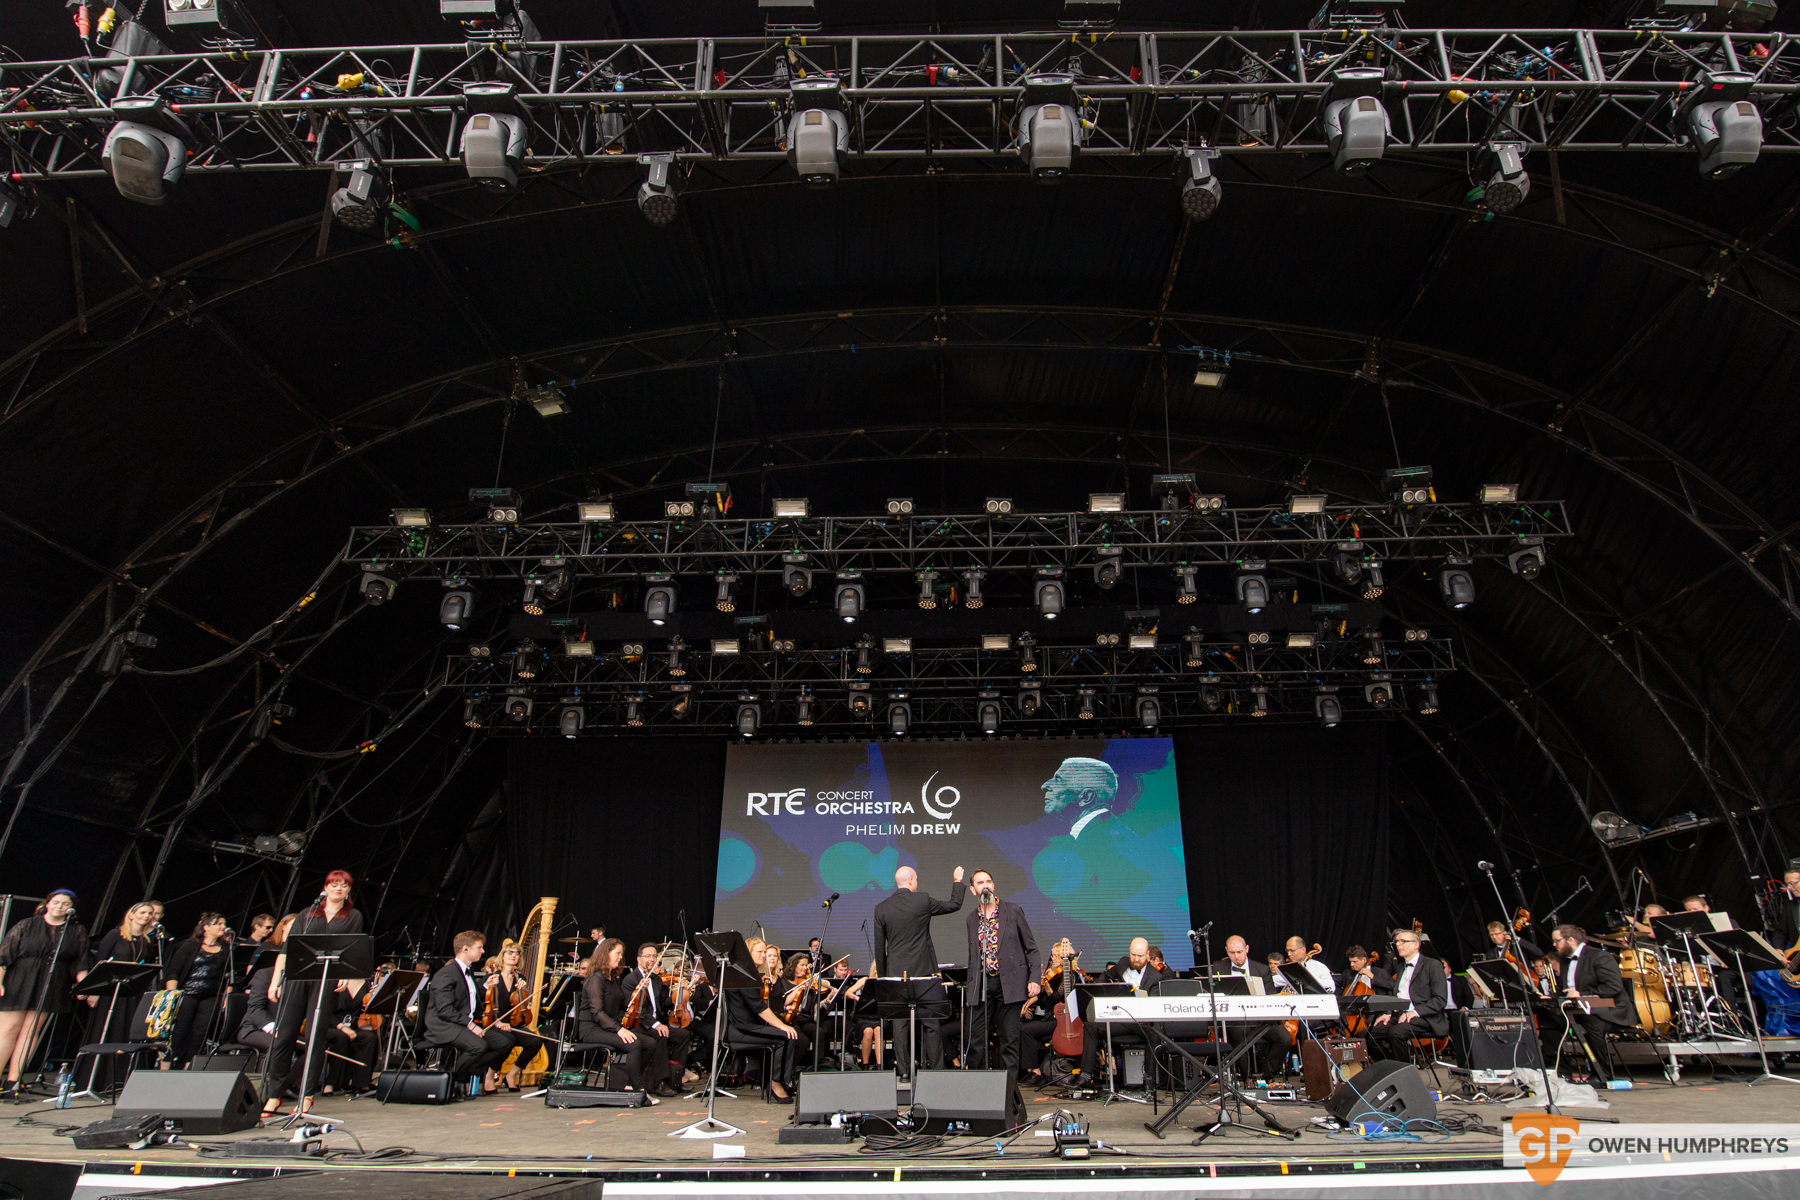 RTE Orchestra at All Together Now 2019. Photo by Owen Humphreys. www.owen.ie